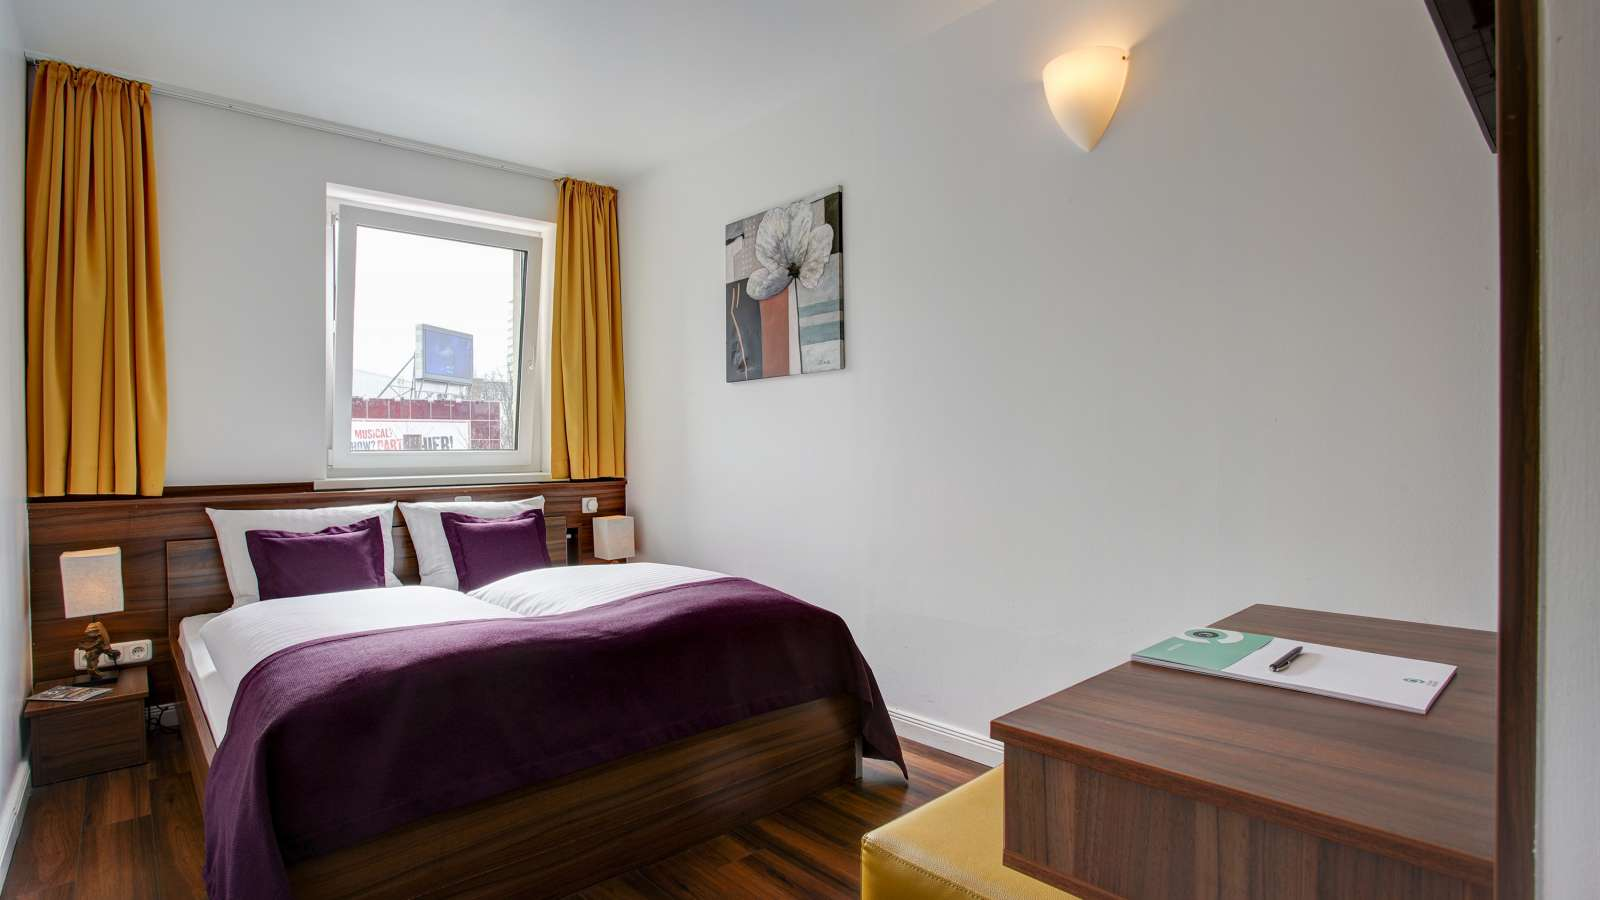 A double room at Centro Hotel North in Hamburgm Centro Hotel North in Hamburg